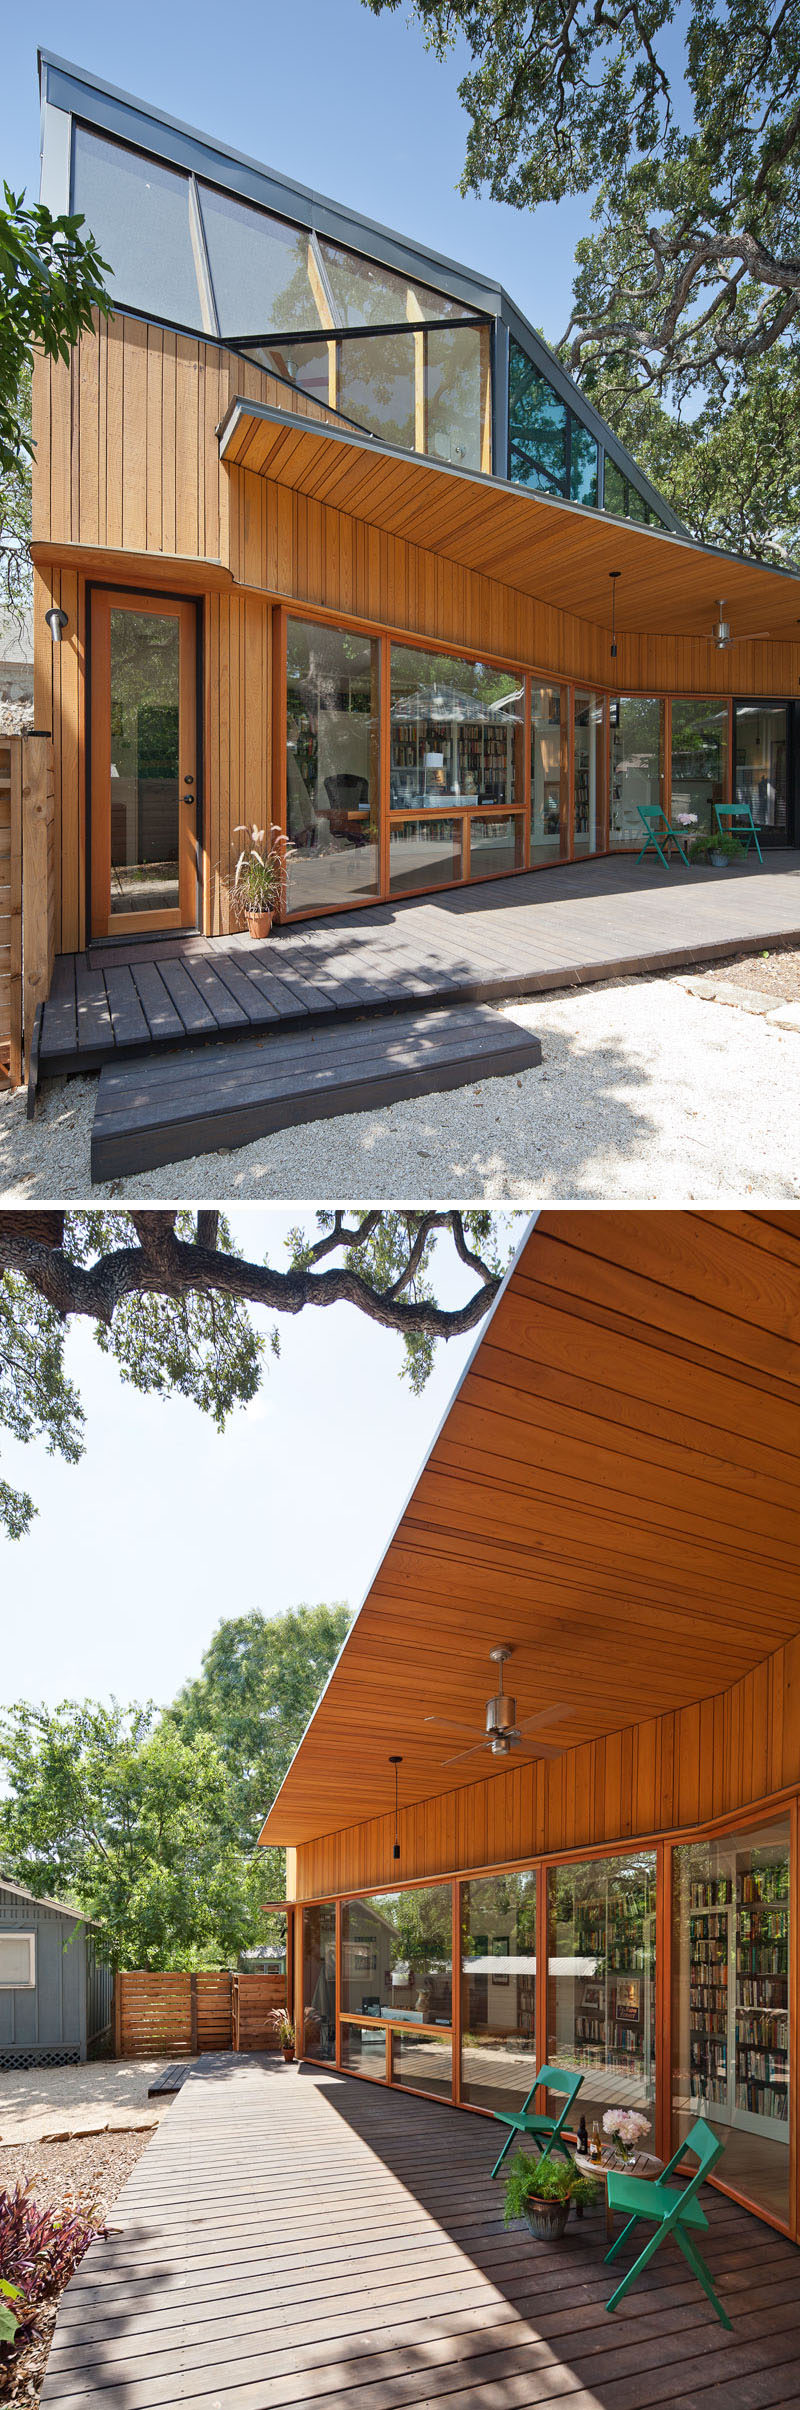 This modern addition has a partially covered deck that runs the length of the addition. The shape of the addition creates a large outdoor space under the tree while also preserving the tree's critical root zone. #ModernAddition #Deck #OutdoorSpace #Backyard